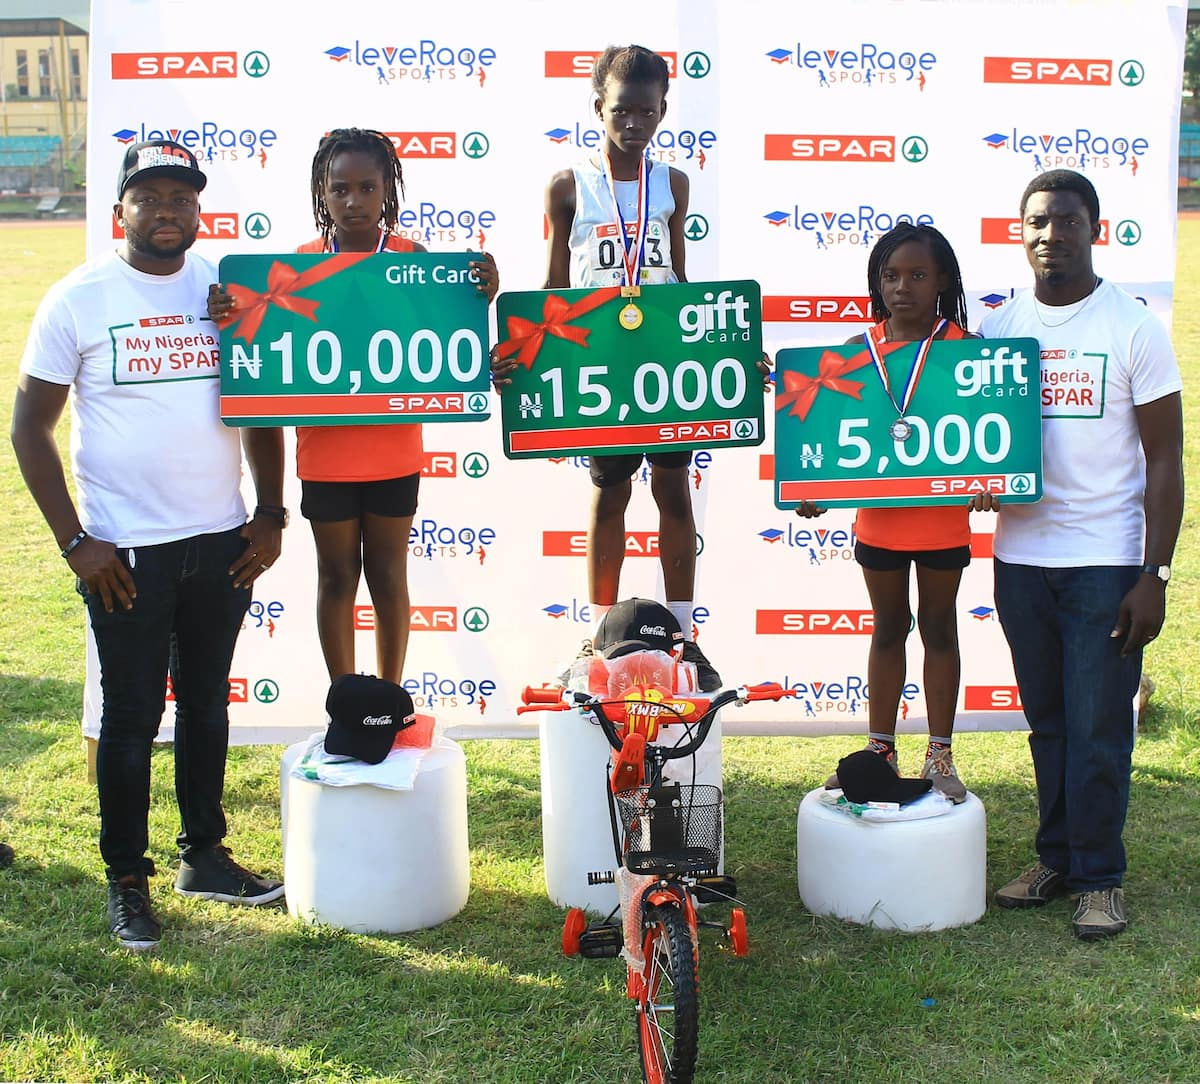 SPAR rewards young athletes at 2018 Sprintstar Tourney in partnership with Leverage Sports